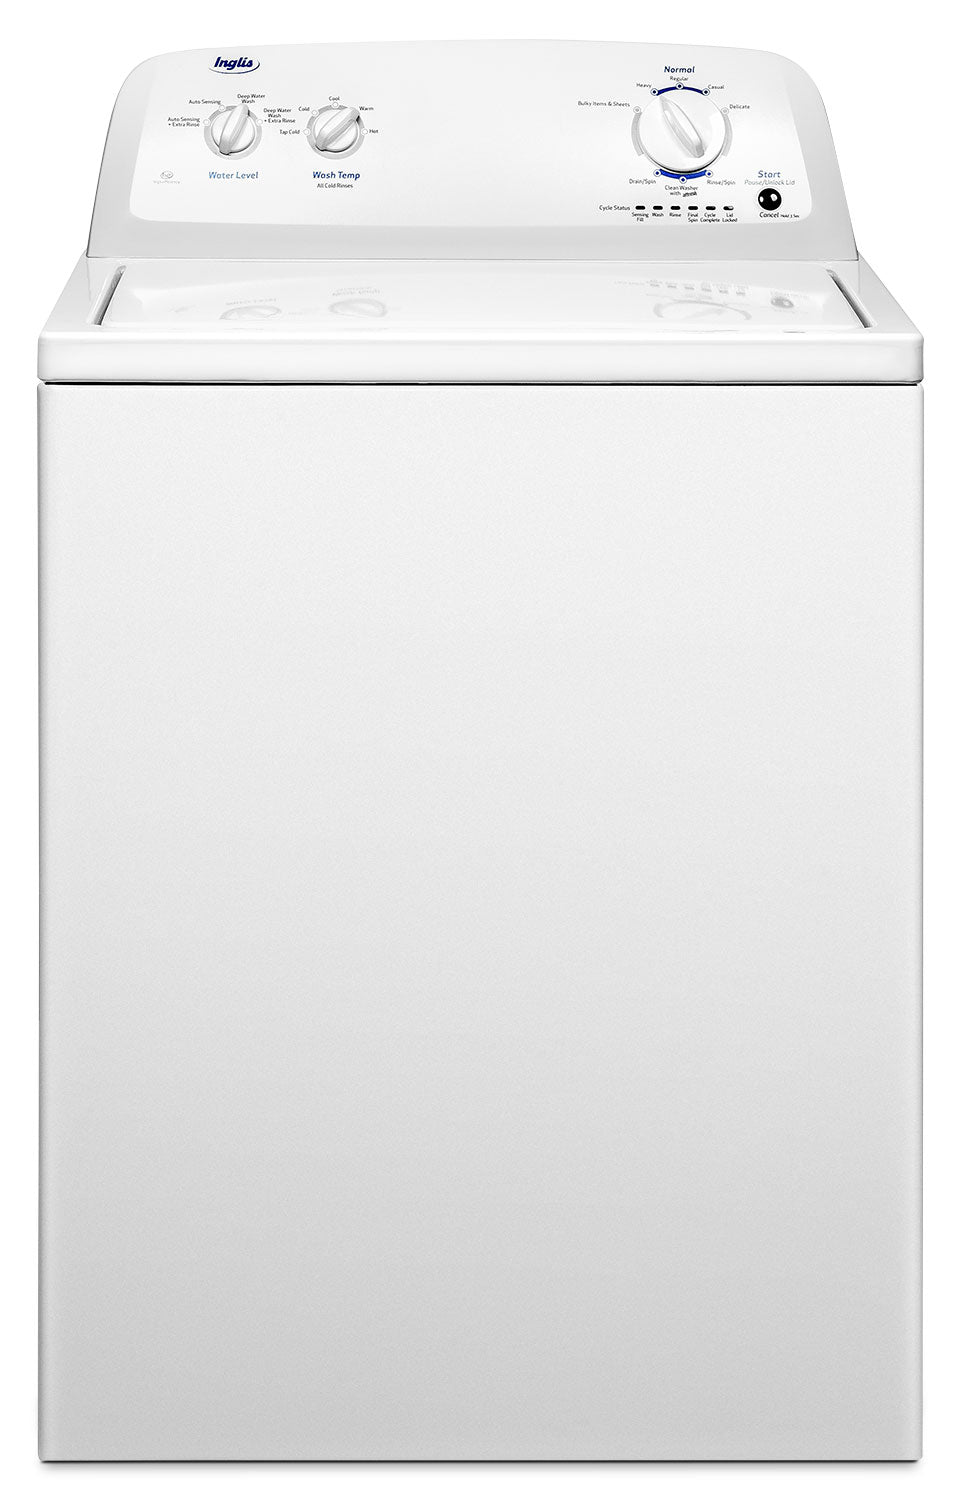 Inglis 4 0 Cu Ft Top Load Washer Itw4871fw The Brick